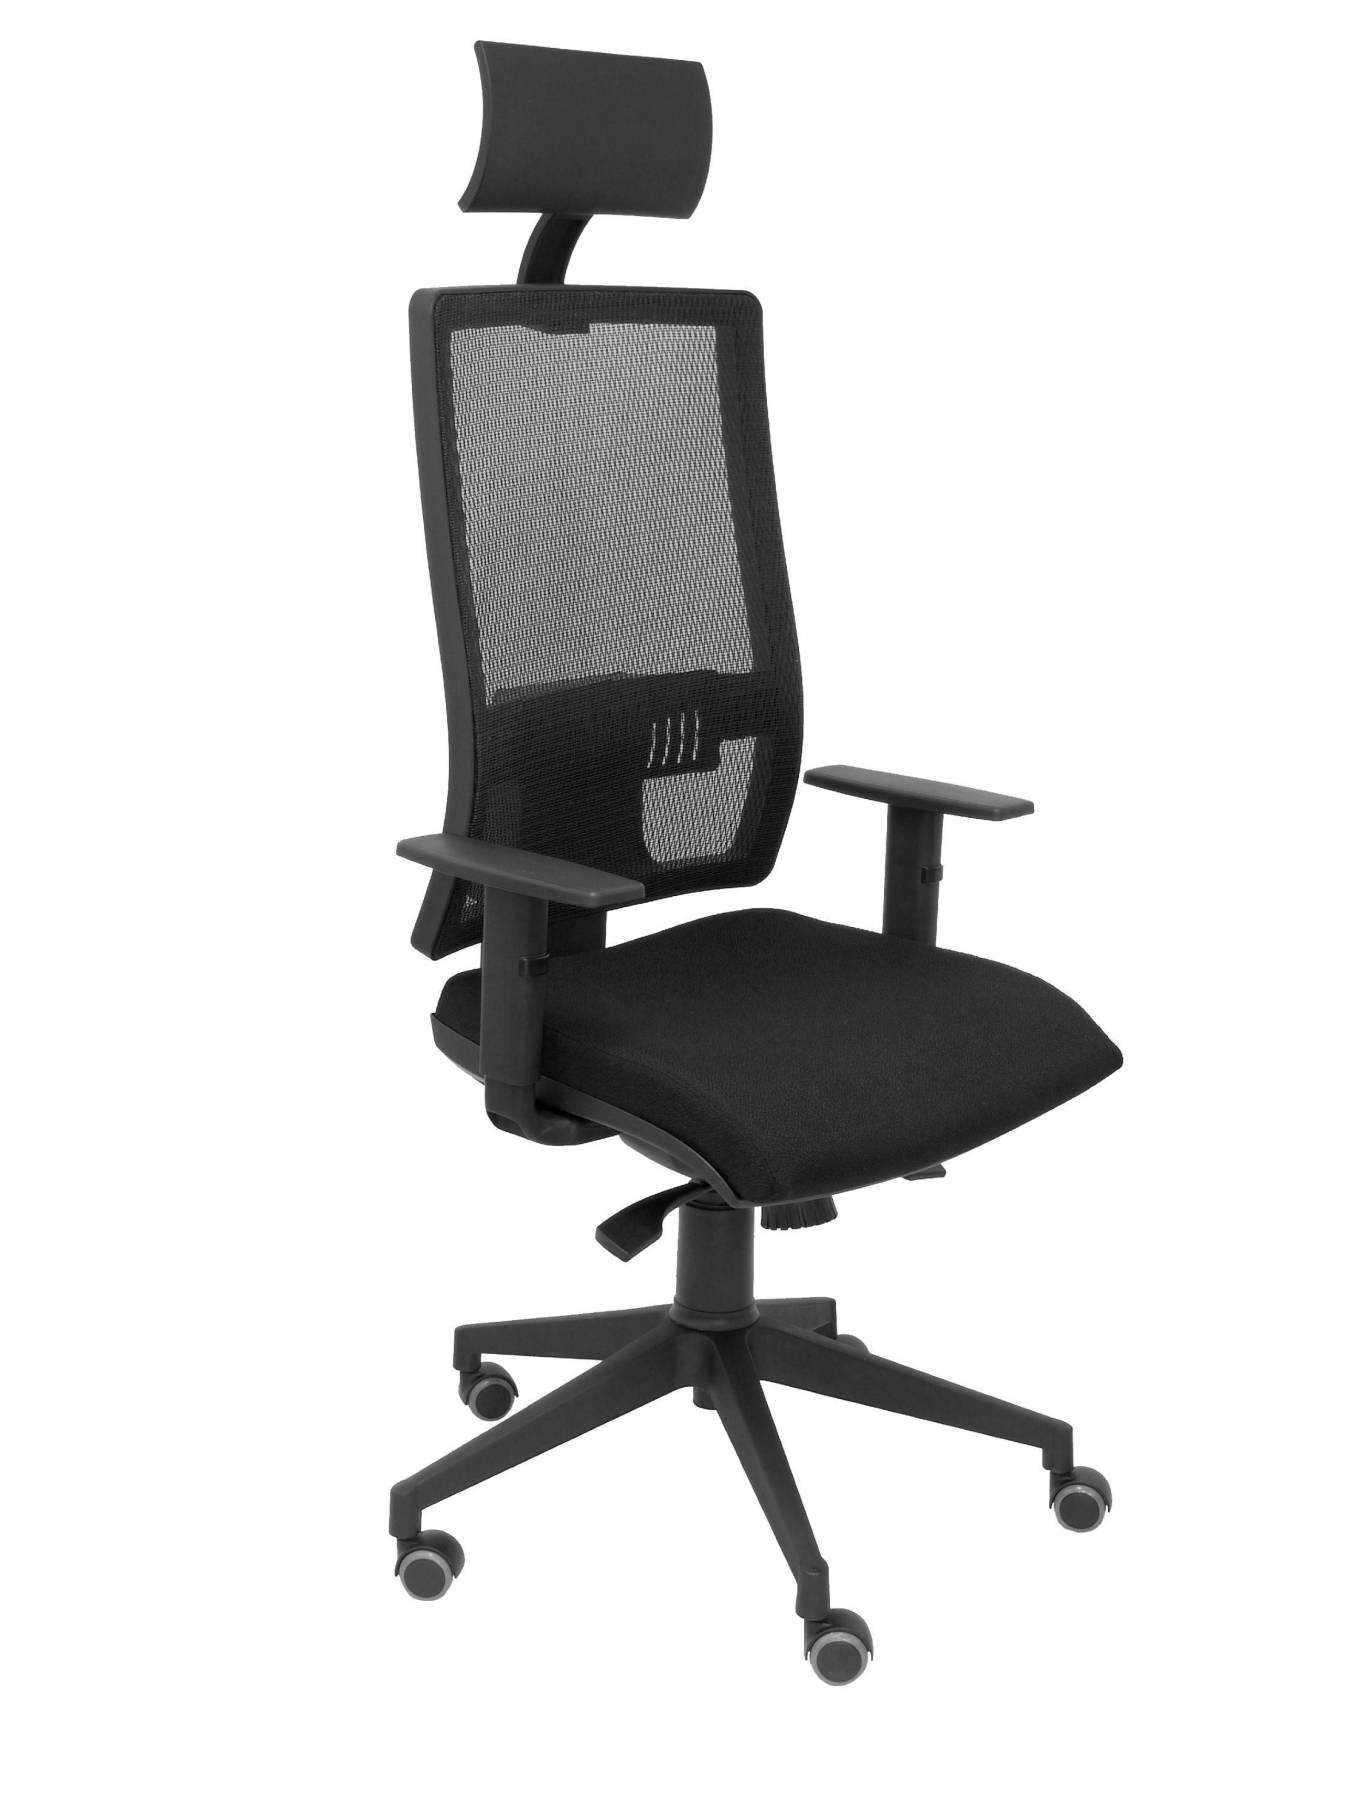 Ergonomic Office Chair With Mechanism Synchro And Adjustable Height-high Back Mesh Breathable With Cabece